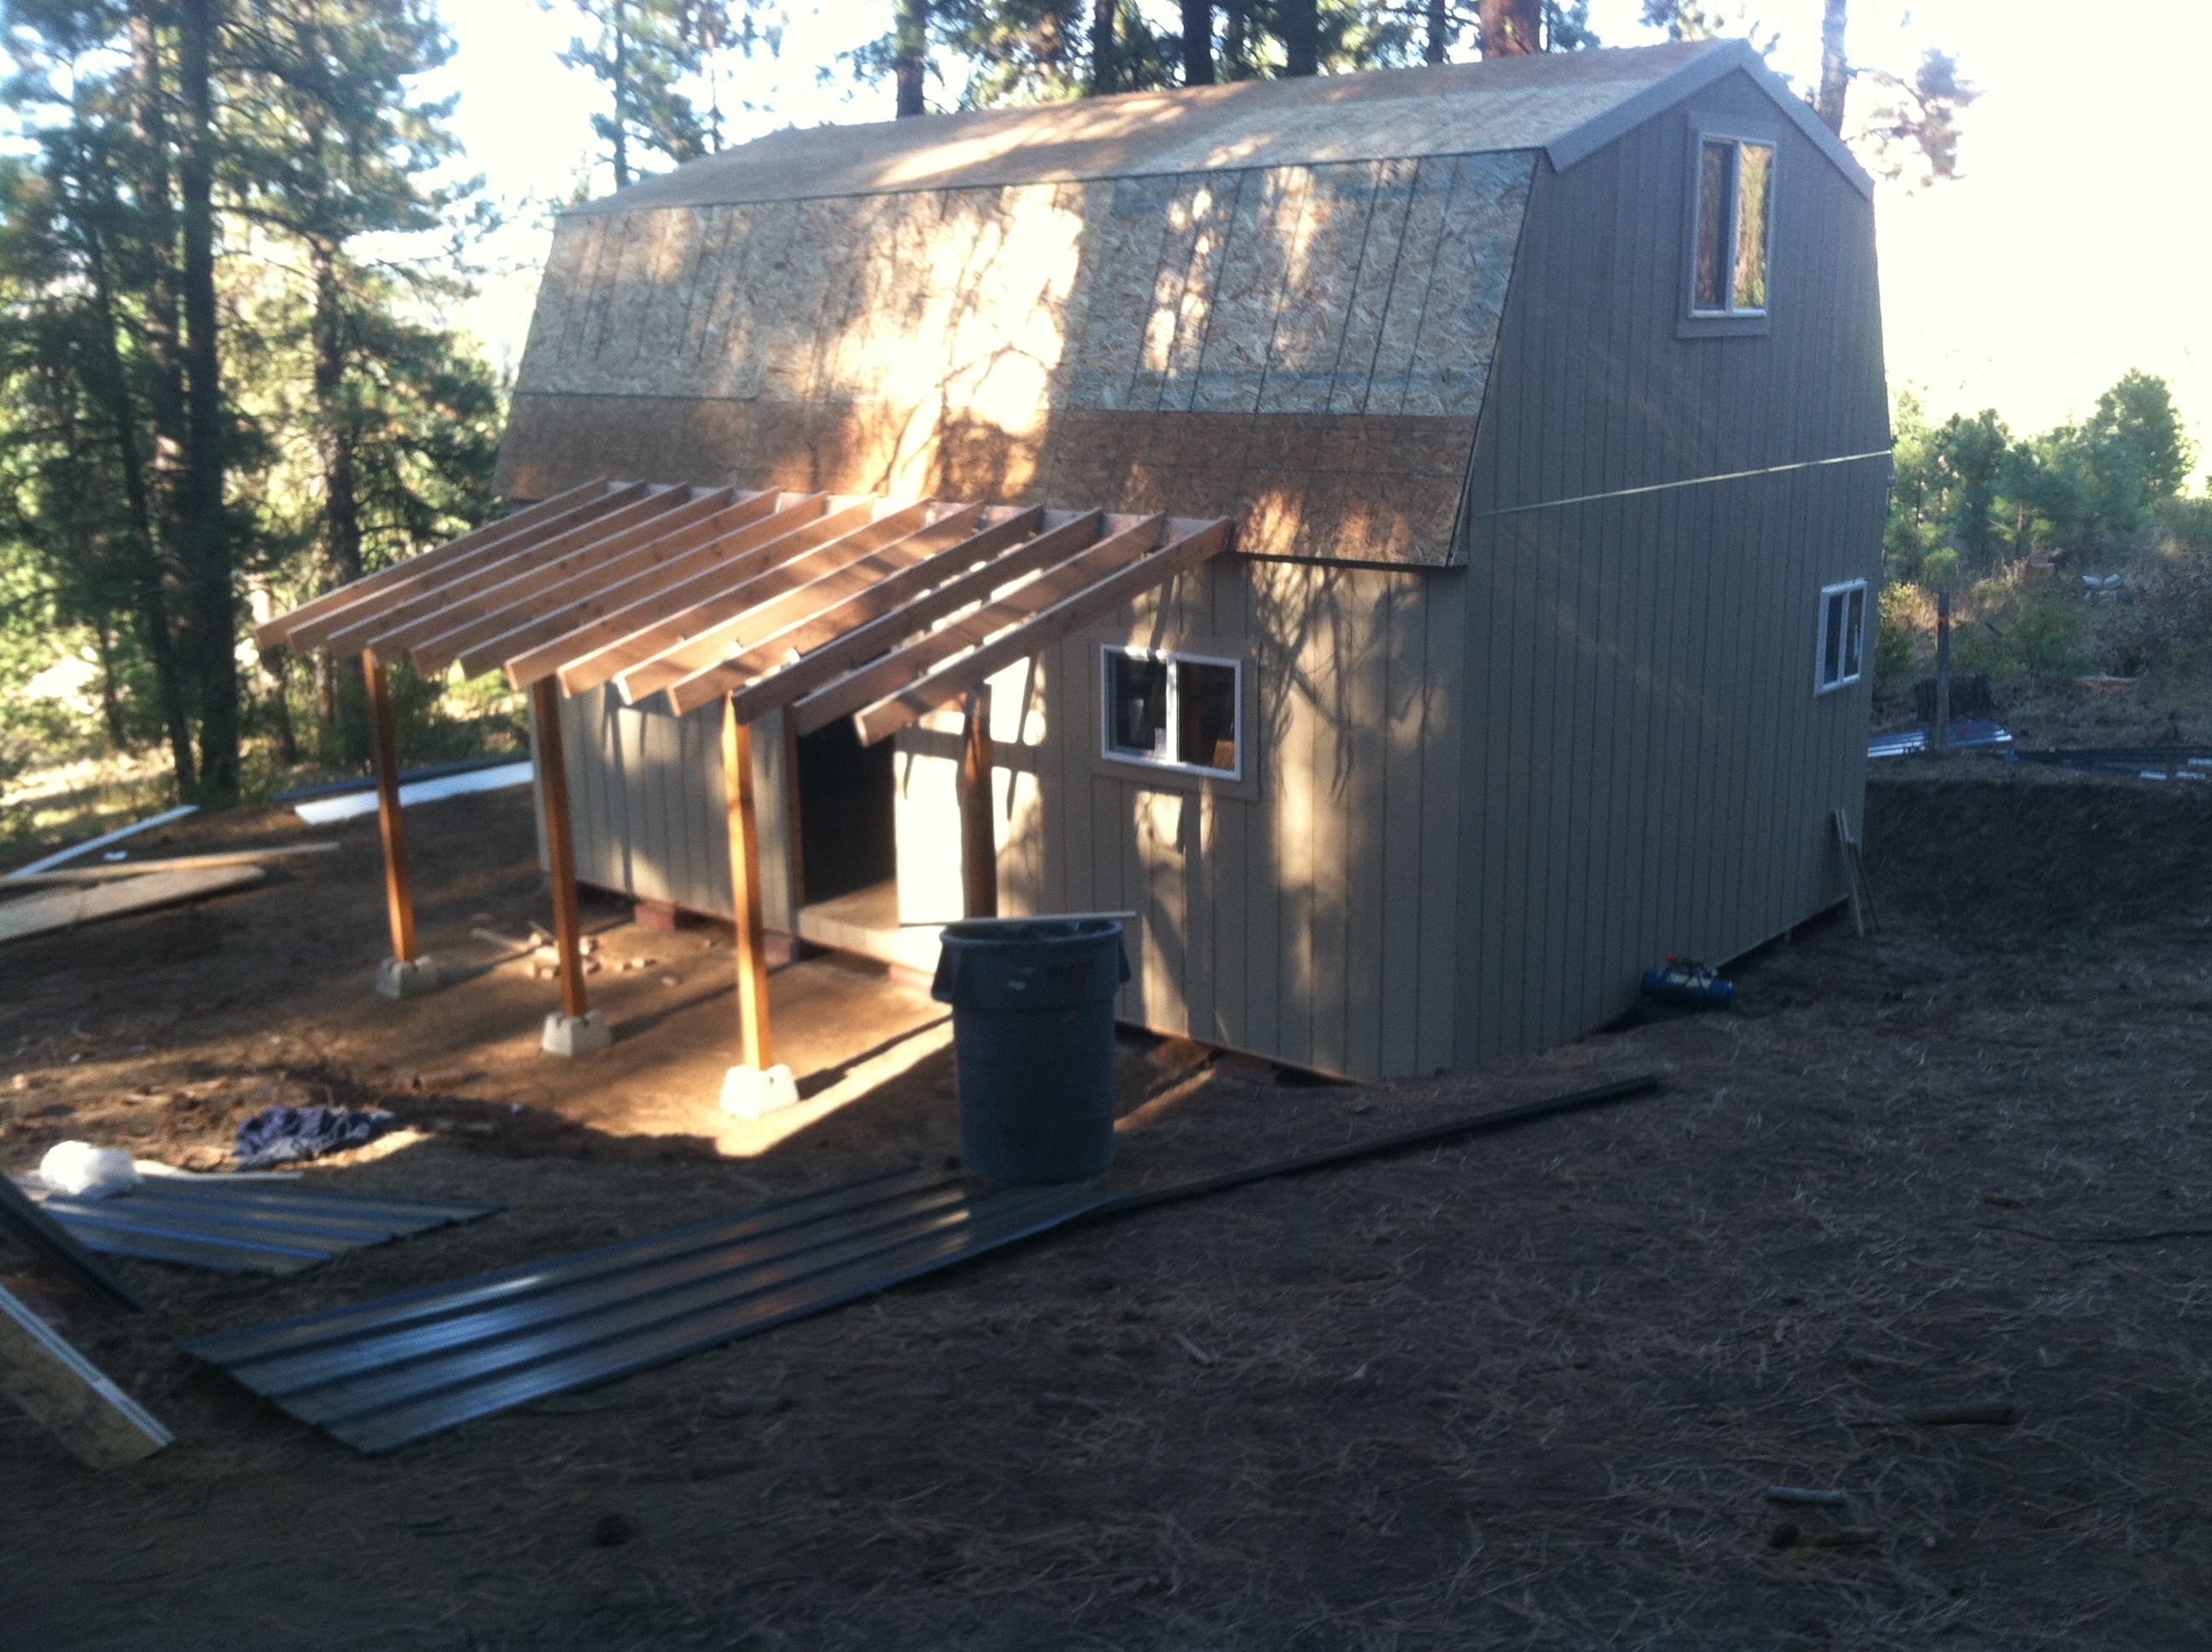 16 X 24 Dry Cabin In Idaho City Idaho Wood Sheds Blog